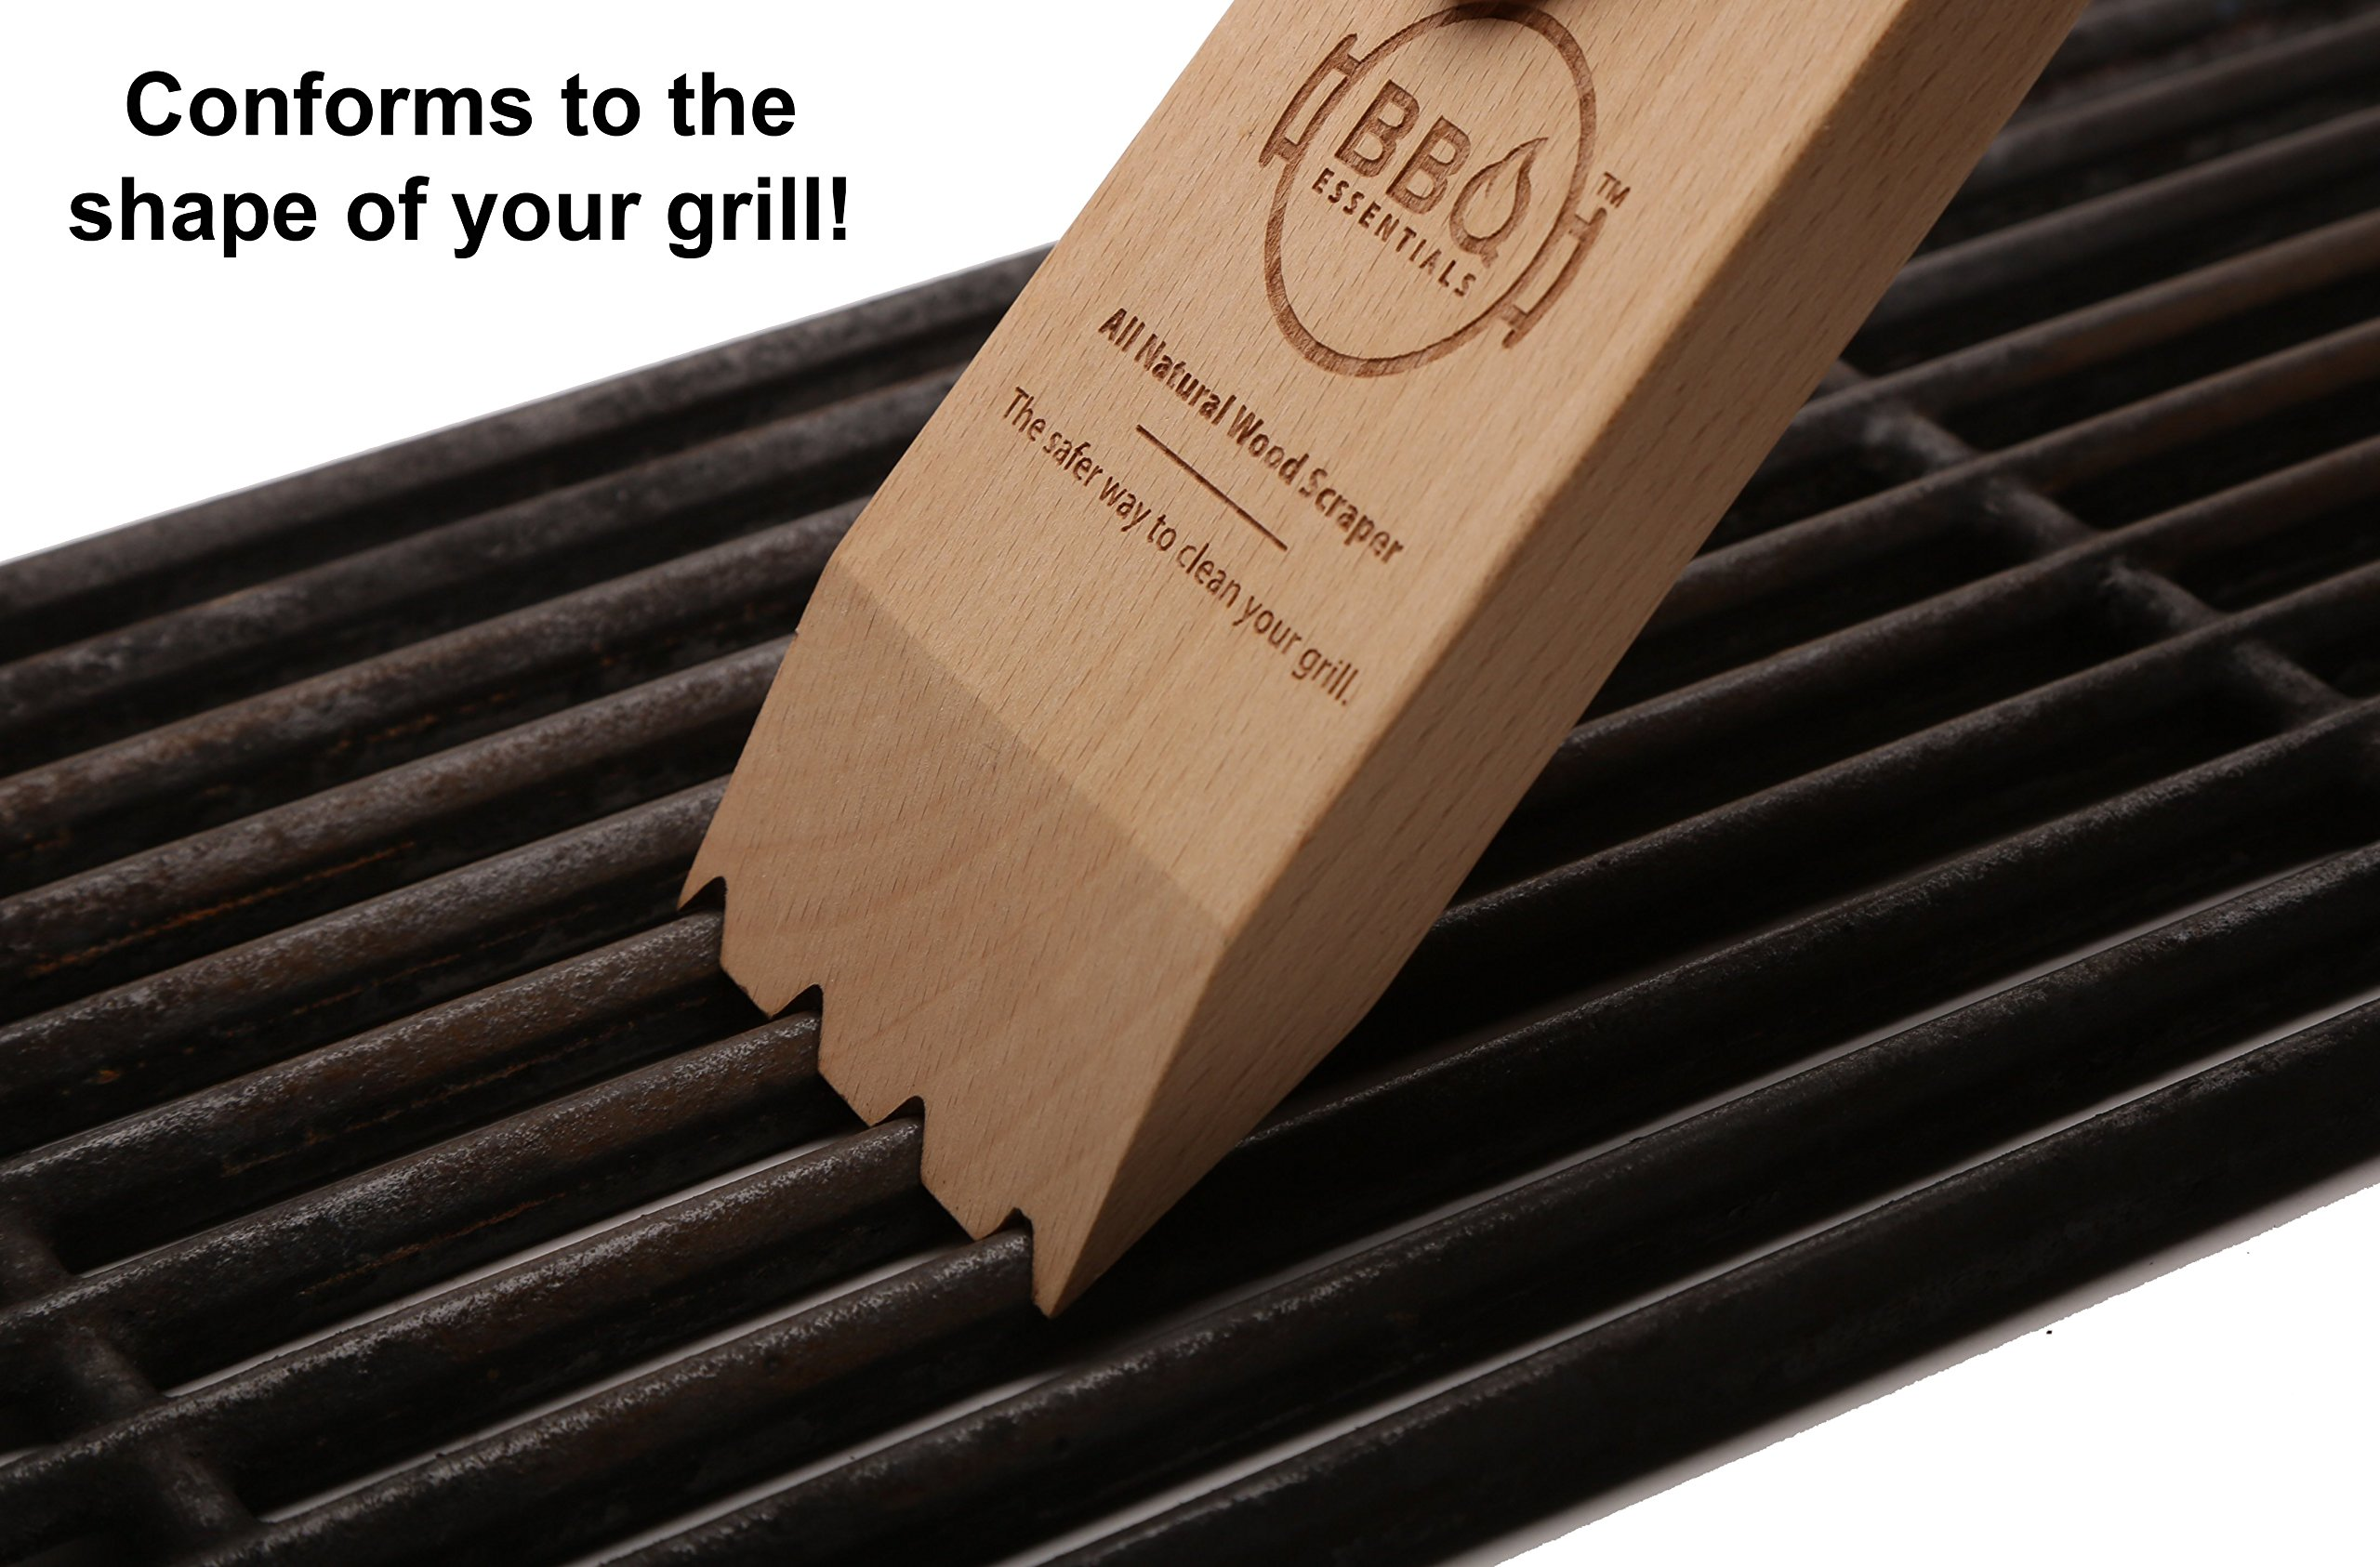 BBQ Essentials All Natural Wood Scraper - Safe, Small, Sustainable Solution to Grill Cleaning by BBQ Essentials (Image #3)